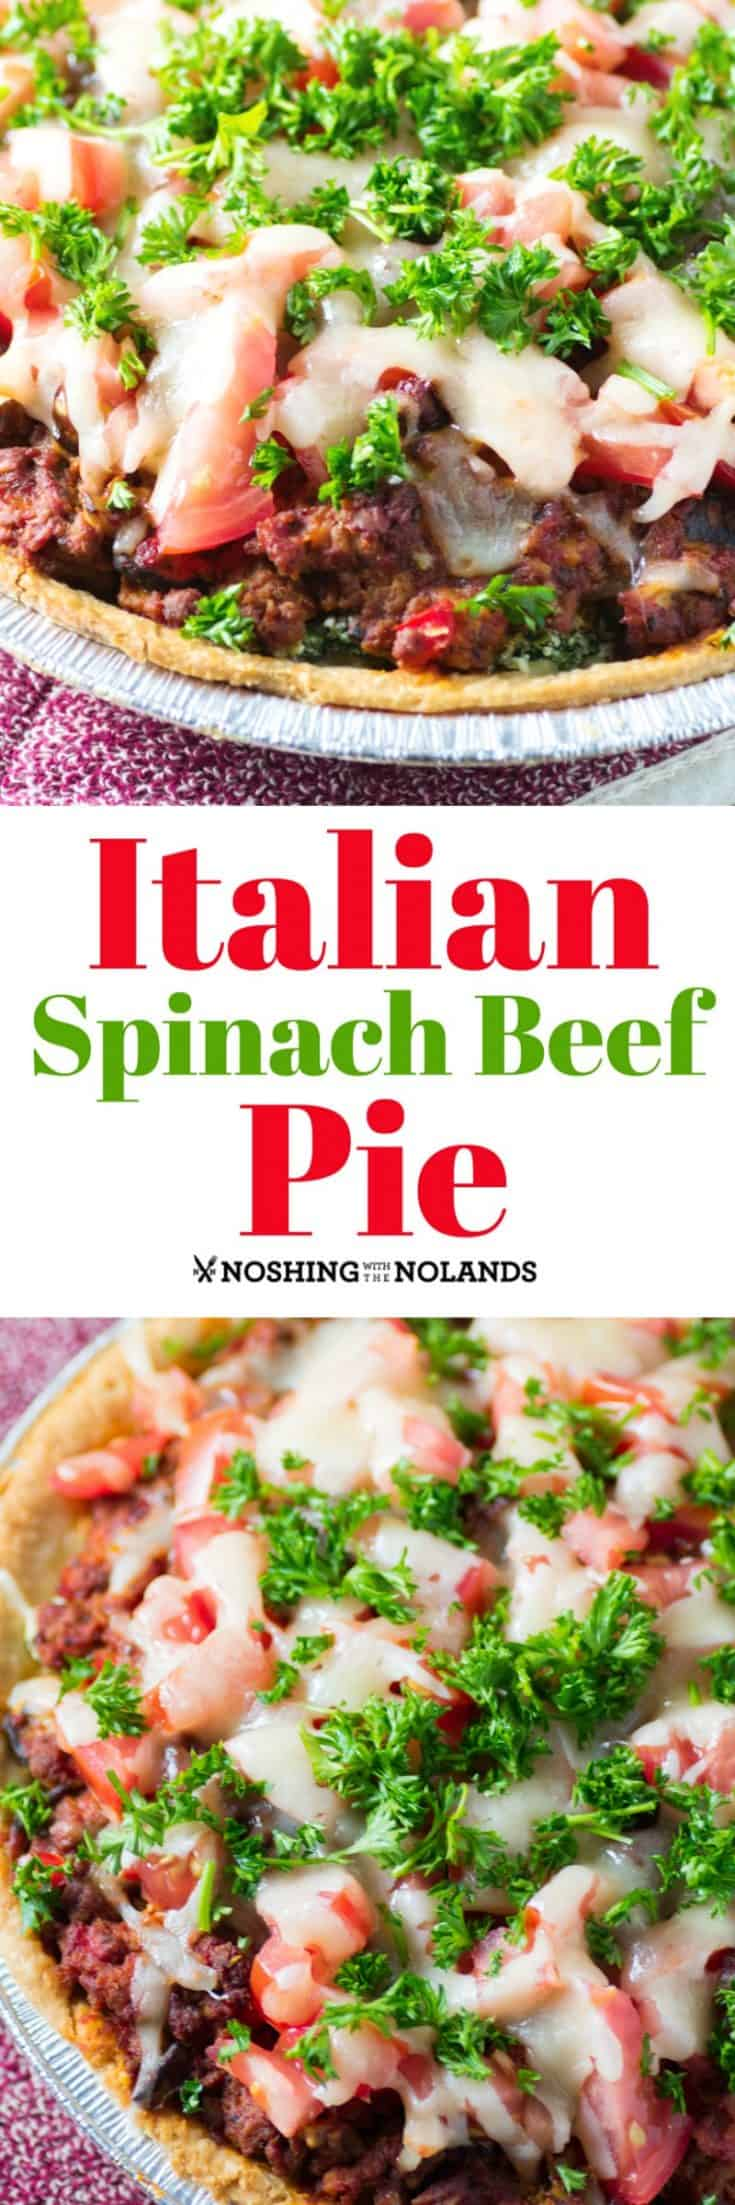 Italian Spinach Beef Pie has been a family favorite for years!! It is easy to make and an entire meal in a slice!! #beefpie #Italian